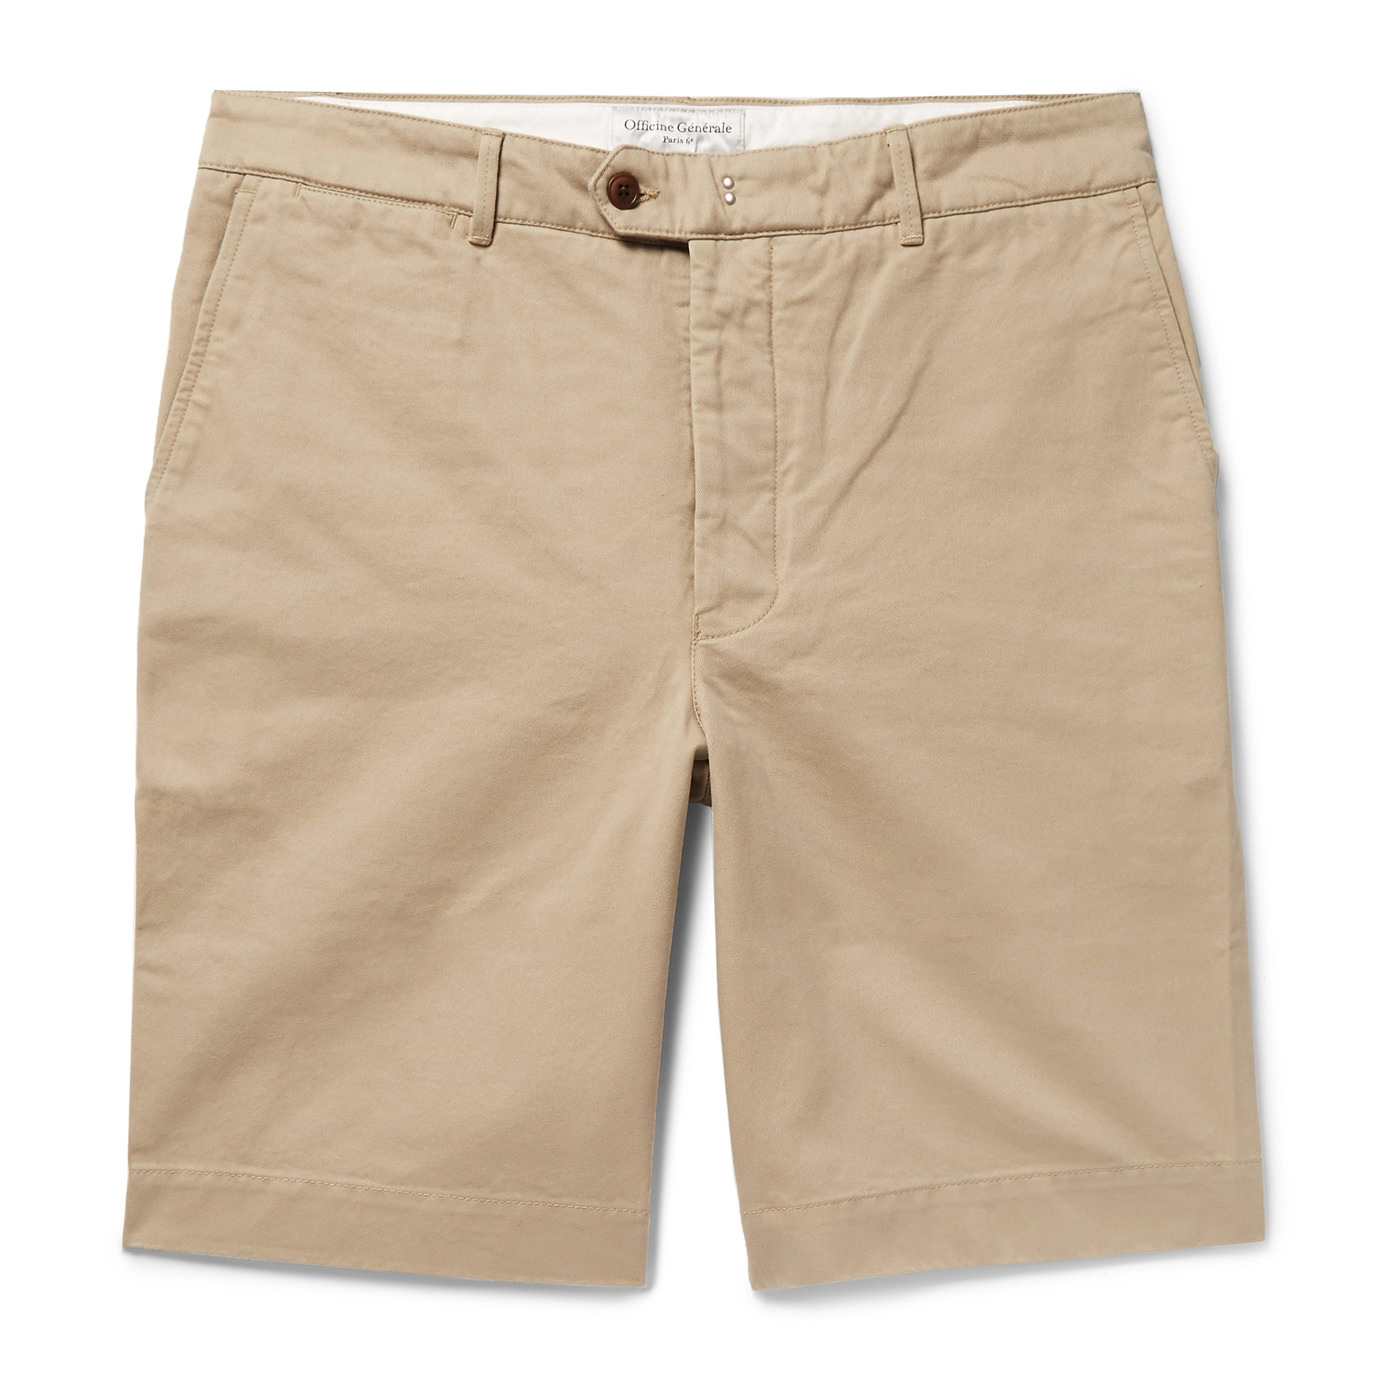 Style Mr Porter Short Bermuda Officine Générale Beige